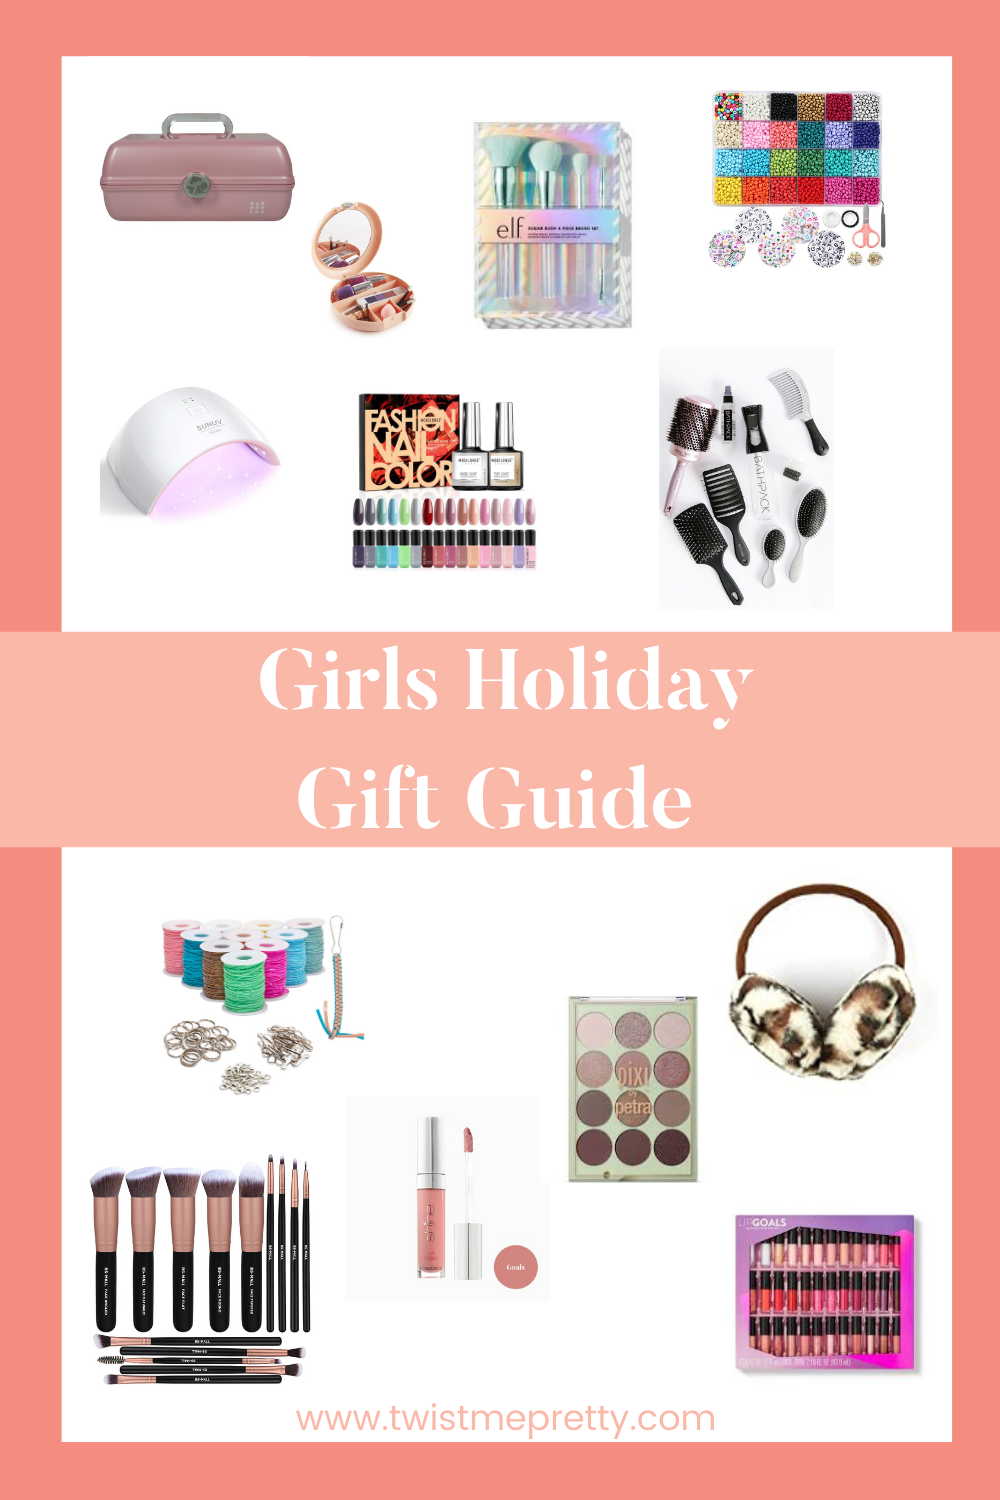 girls holiday gift guide 2020. www.twistmepretty.com